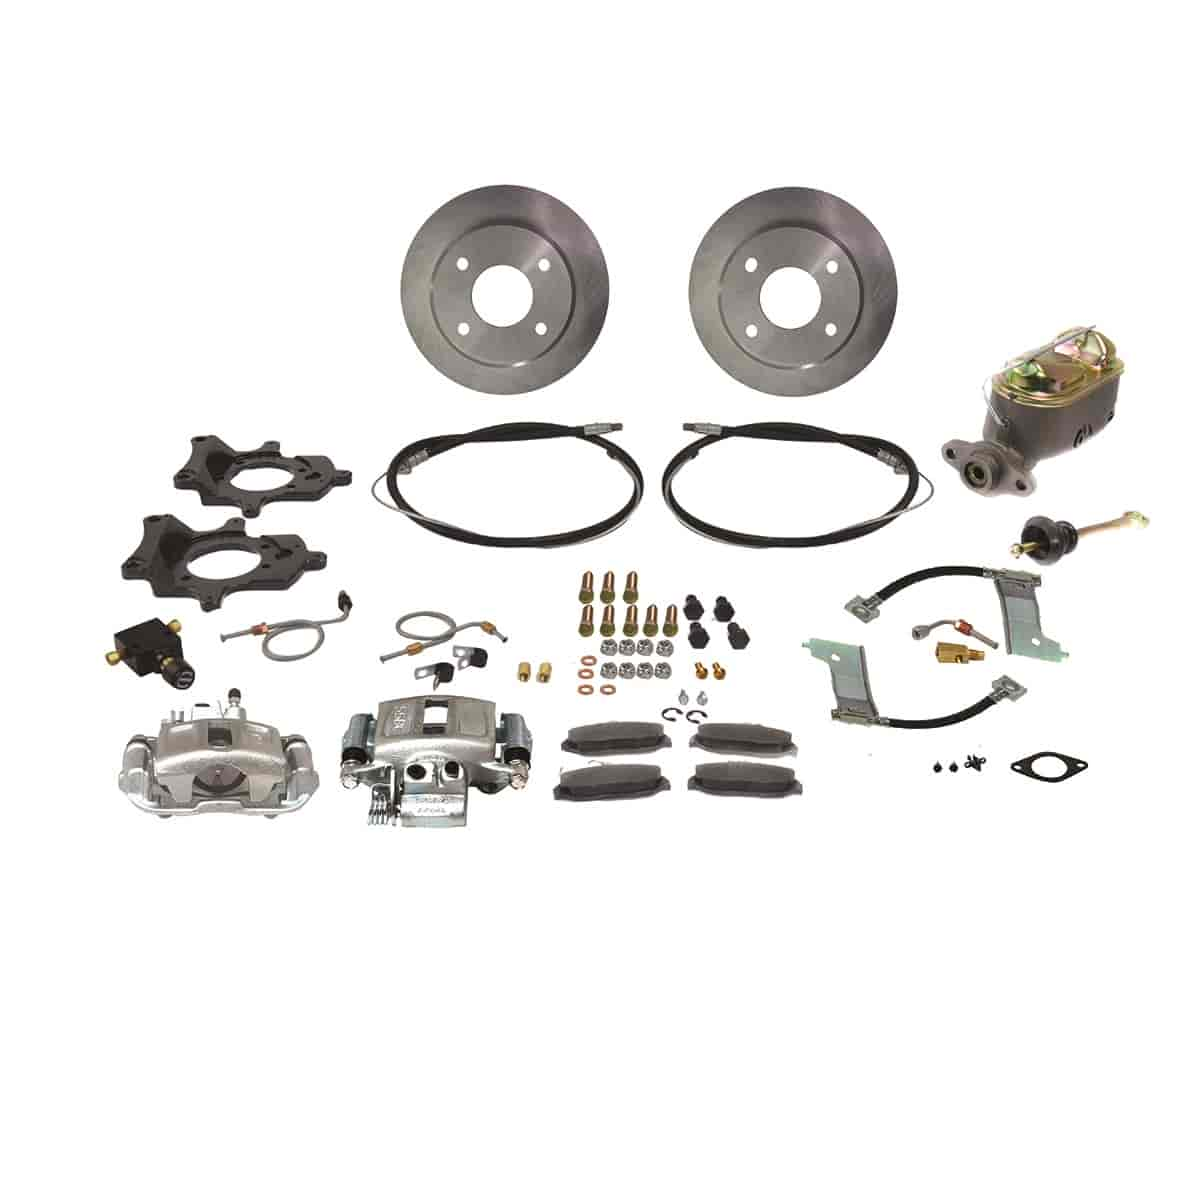 SSBC A112-1 - Stainless Steel Brakes Single Piston Rear Drum to Disc Brake Conversion Kits